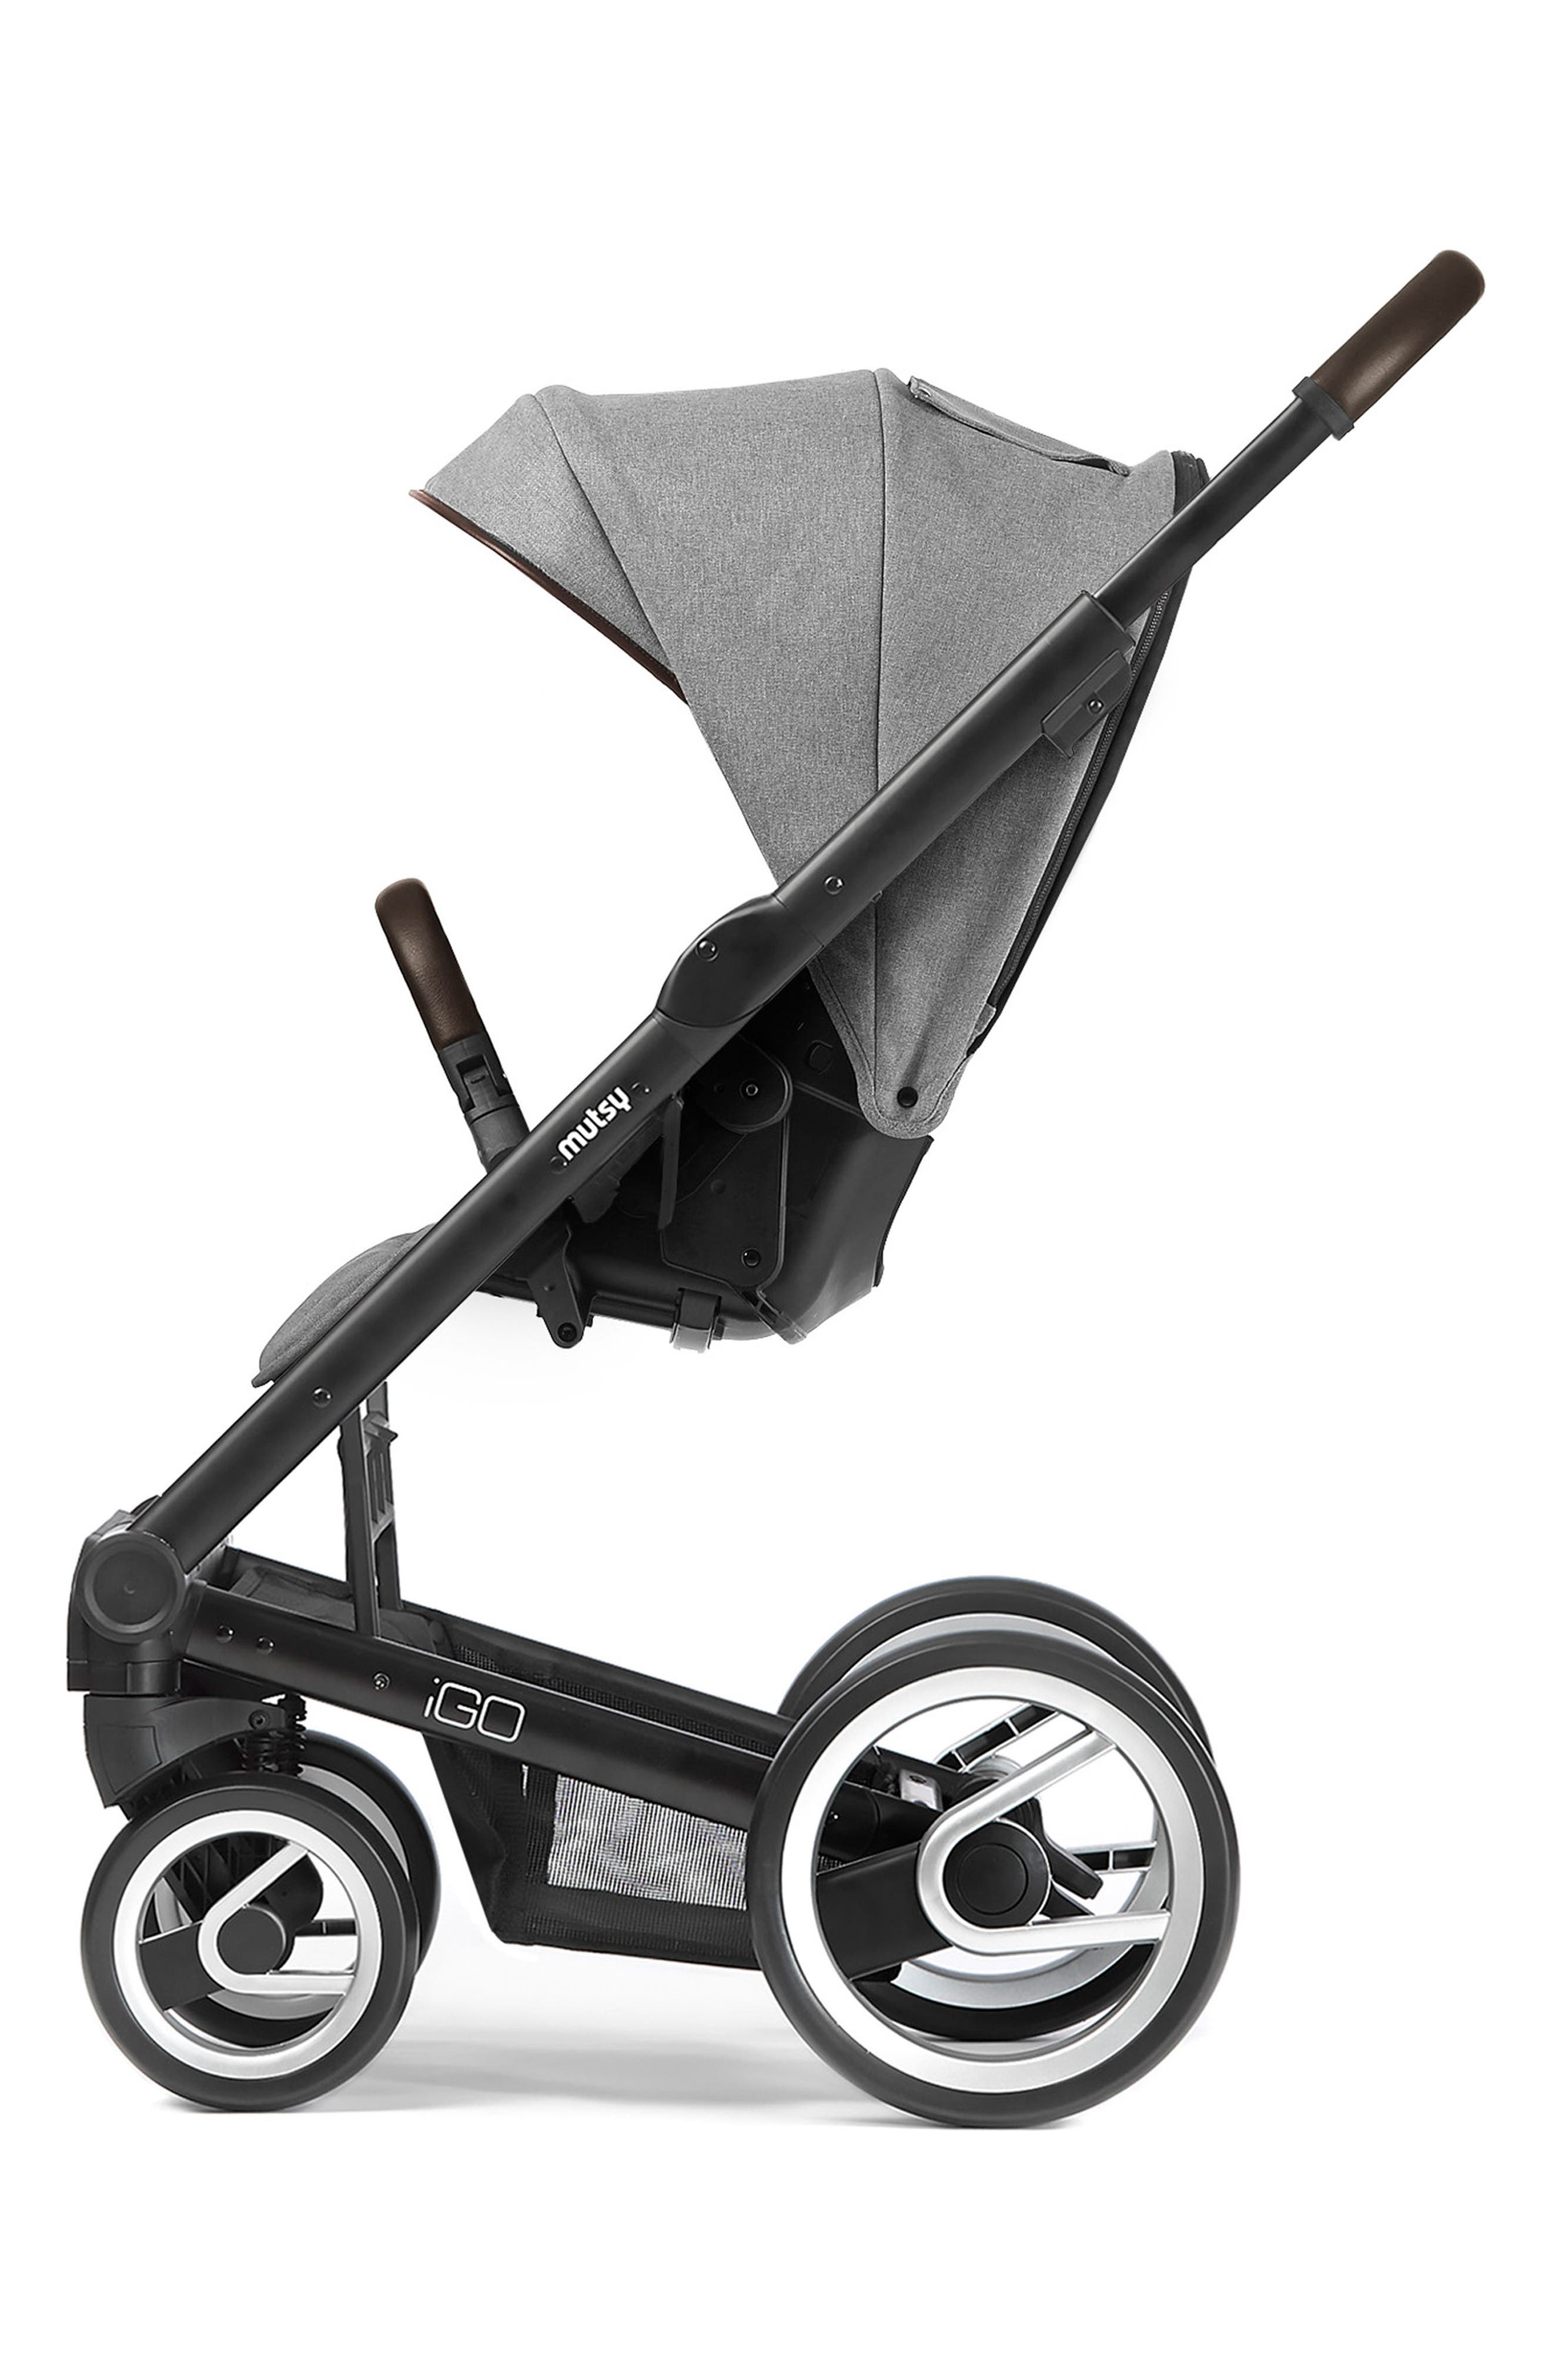 Igo - Farmer Earth Stroller,                             Alternate thumbnail 2, color,                             BLACK